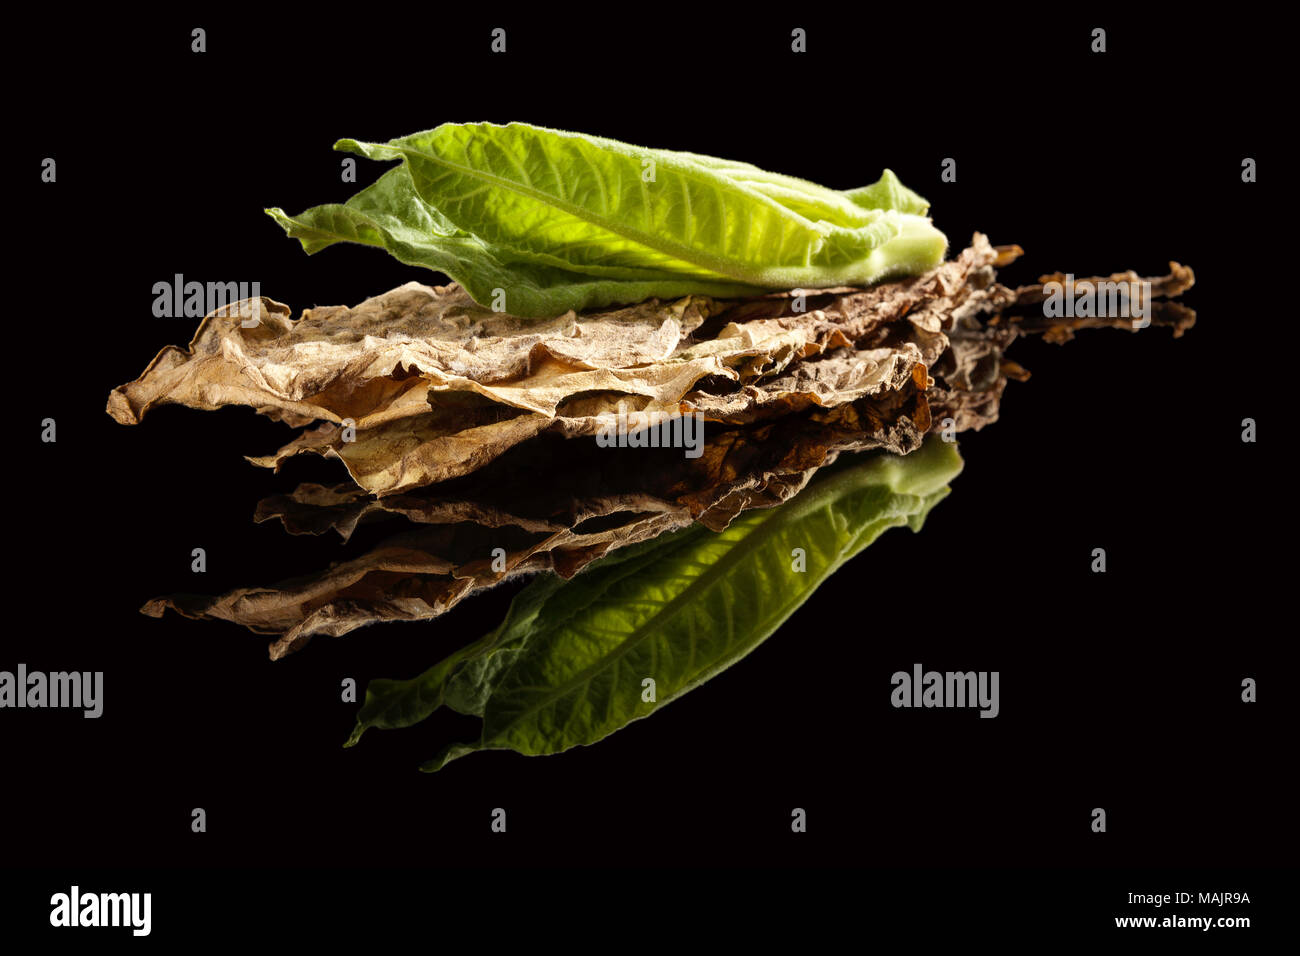 Fresh and dried tobacco leaves isolated on dark background with reflection. - Stock Image